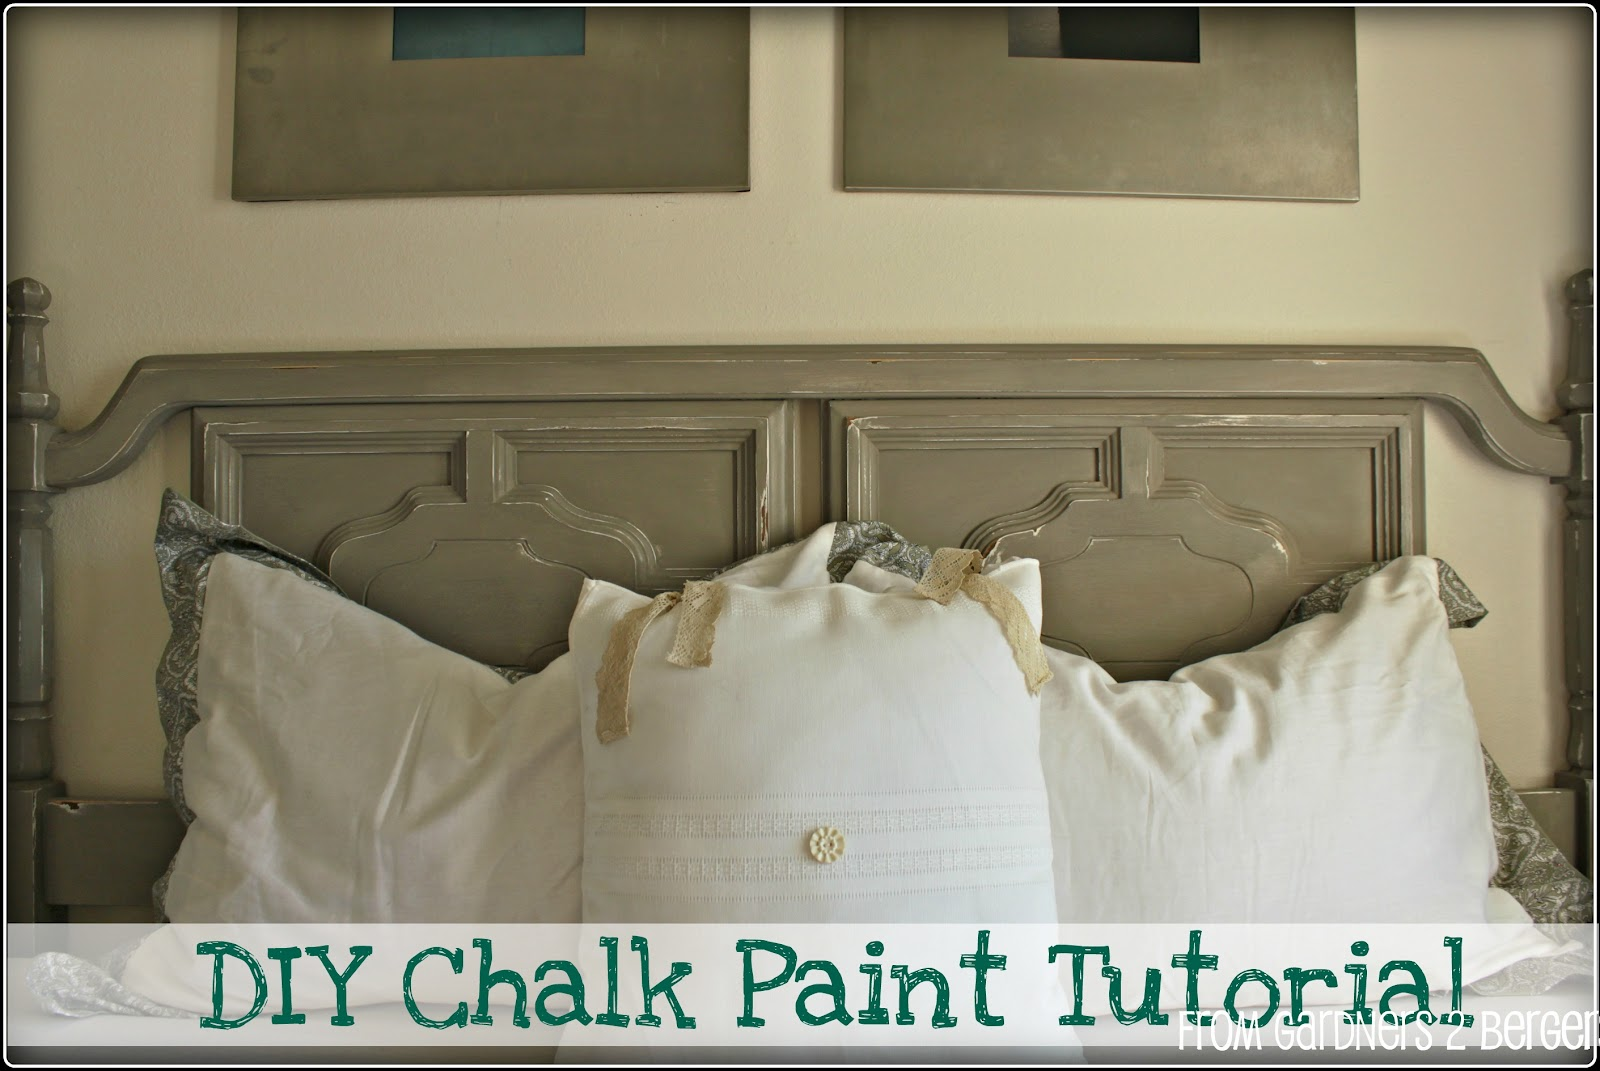 DIY-Chalk-Paint-Headboard-Makeover-tutorial